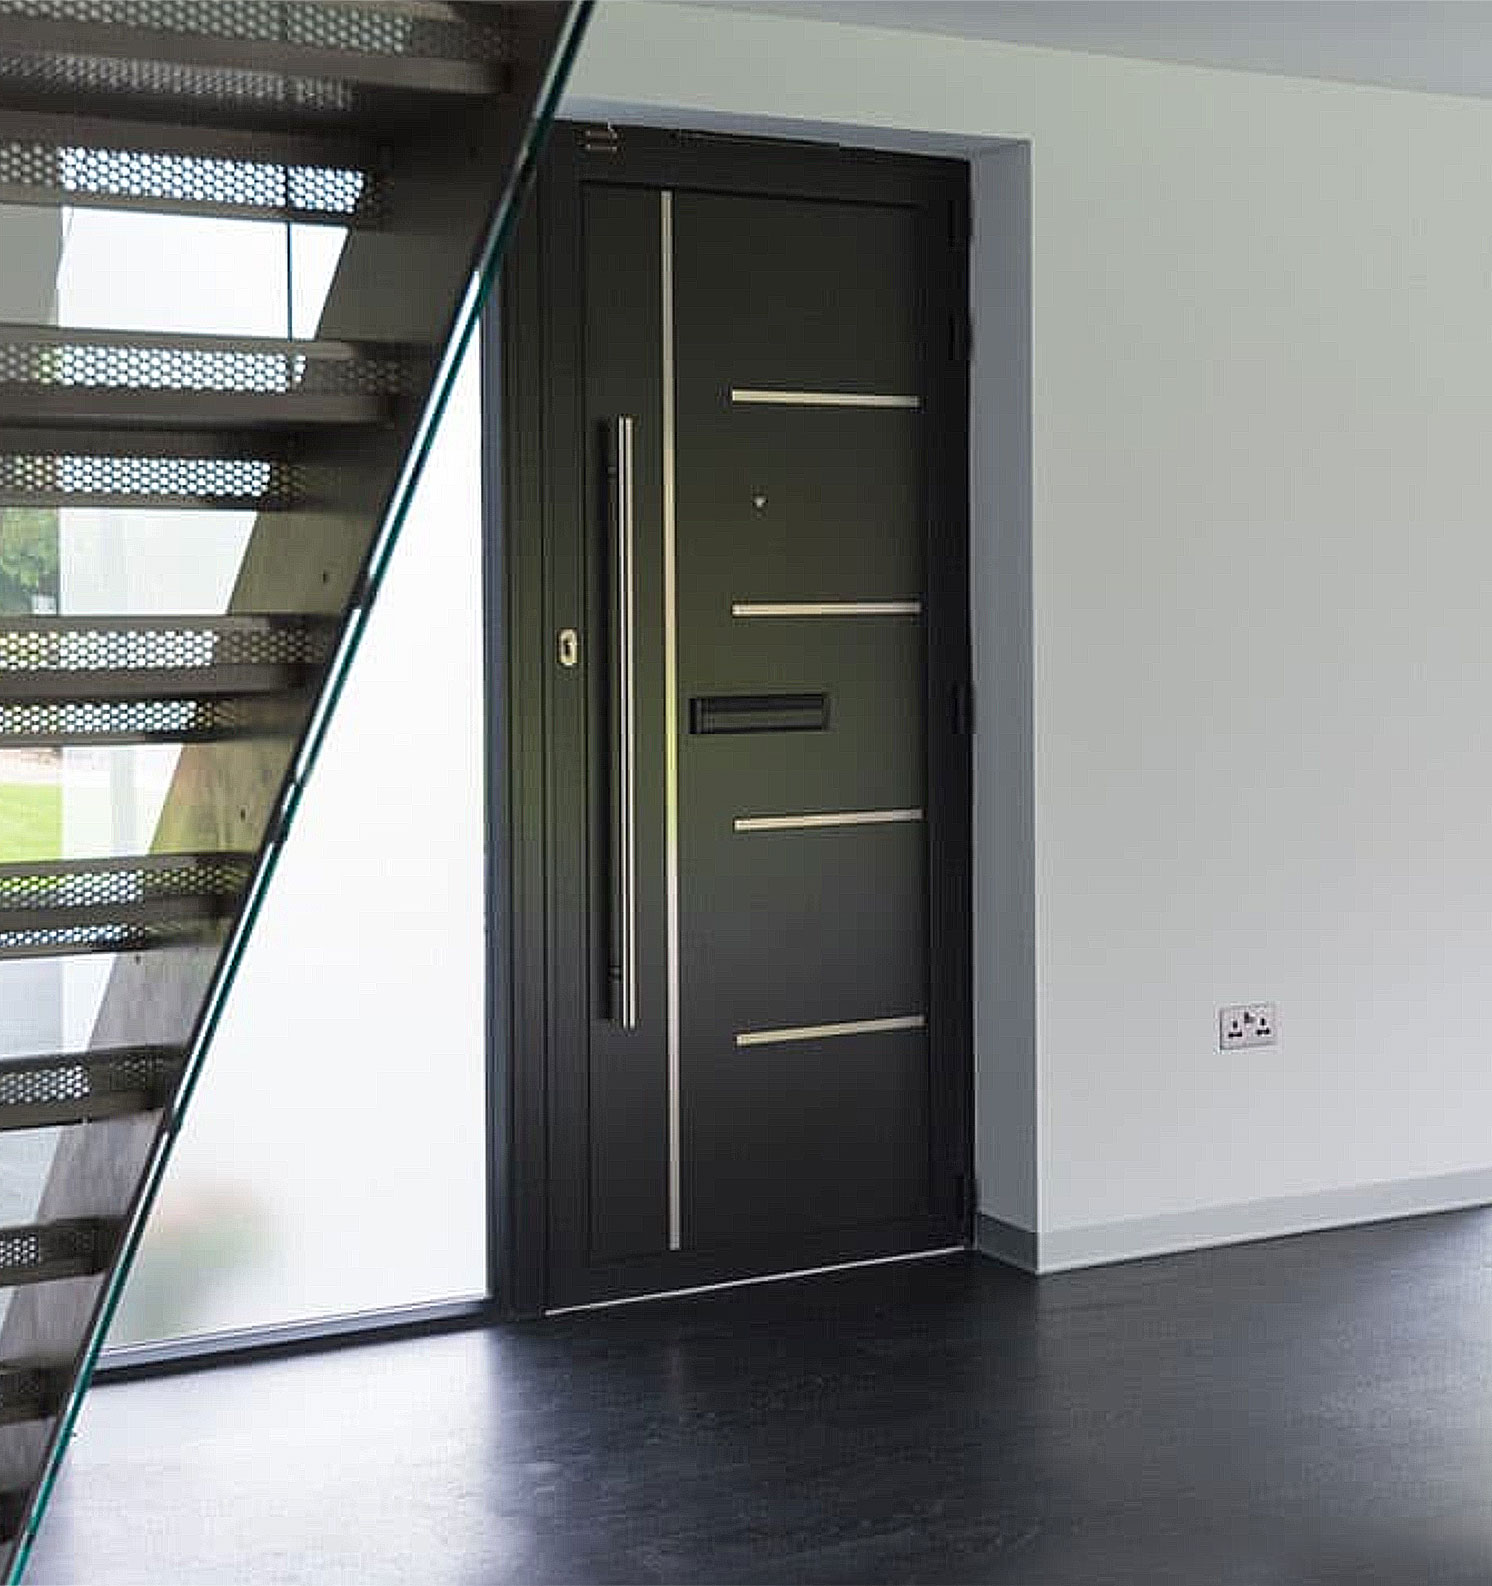 A black steel entry door from The Folding Door Store in Southern California.